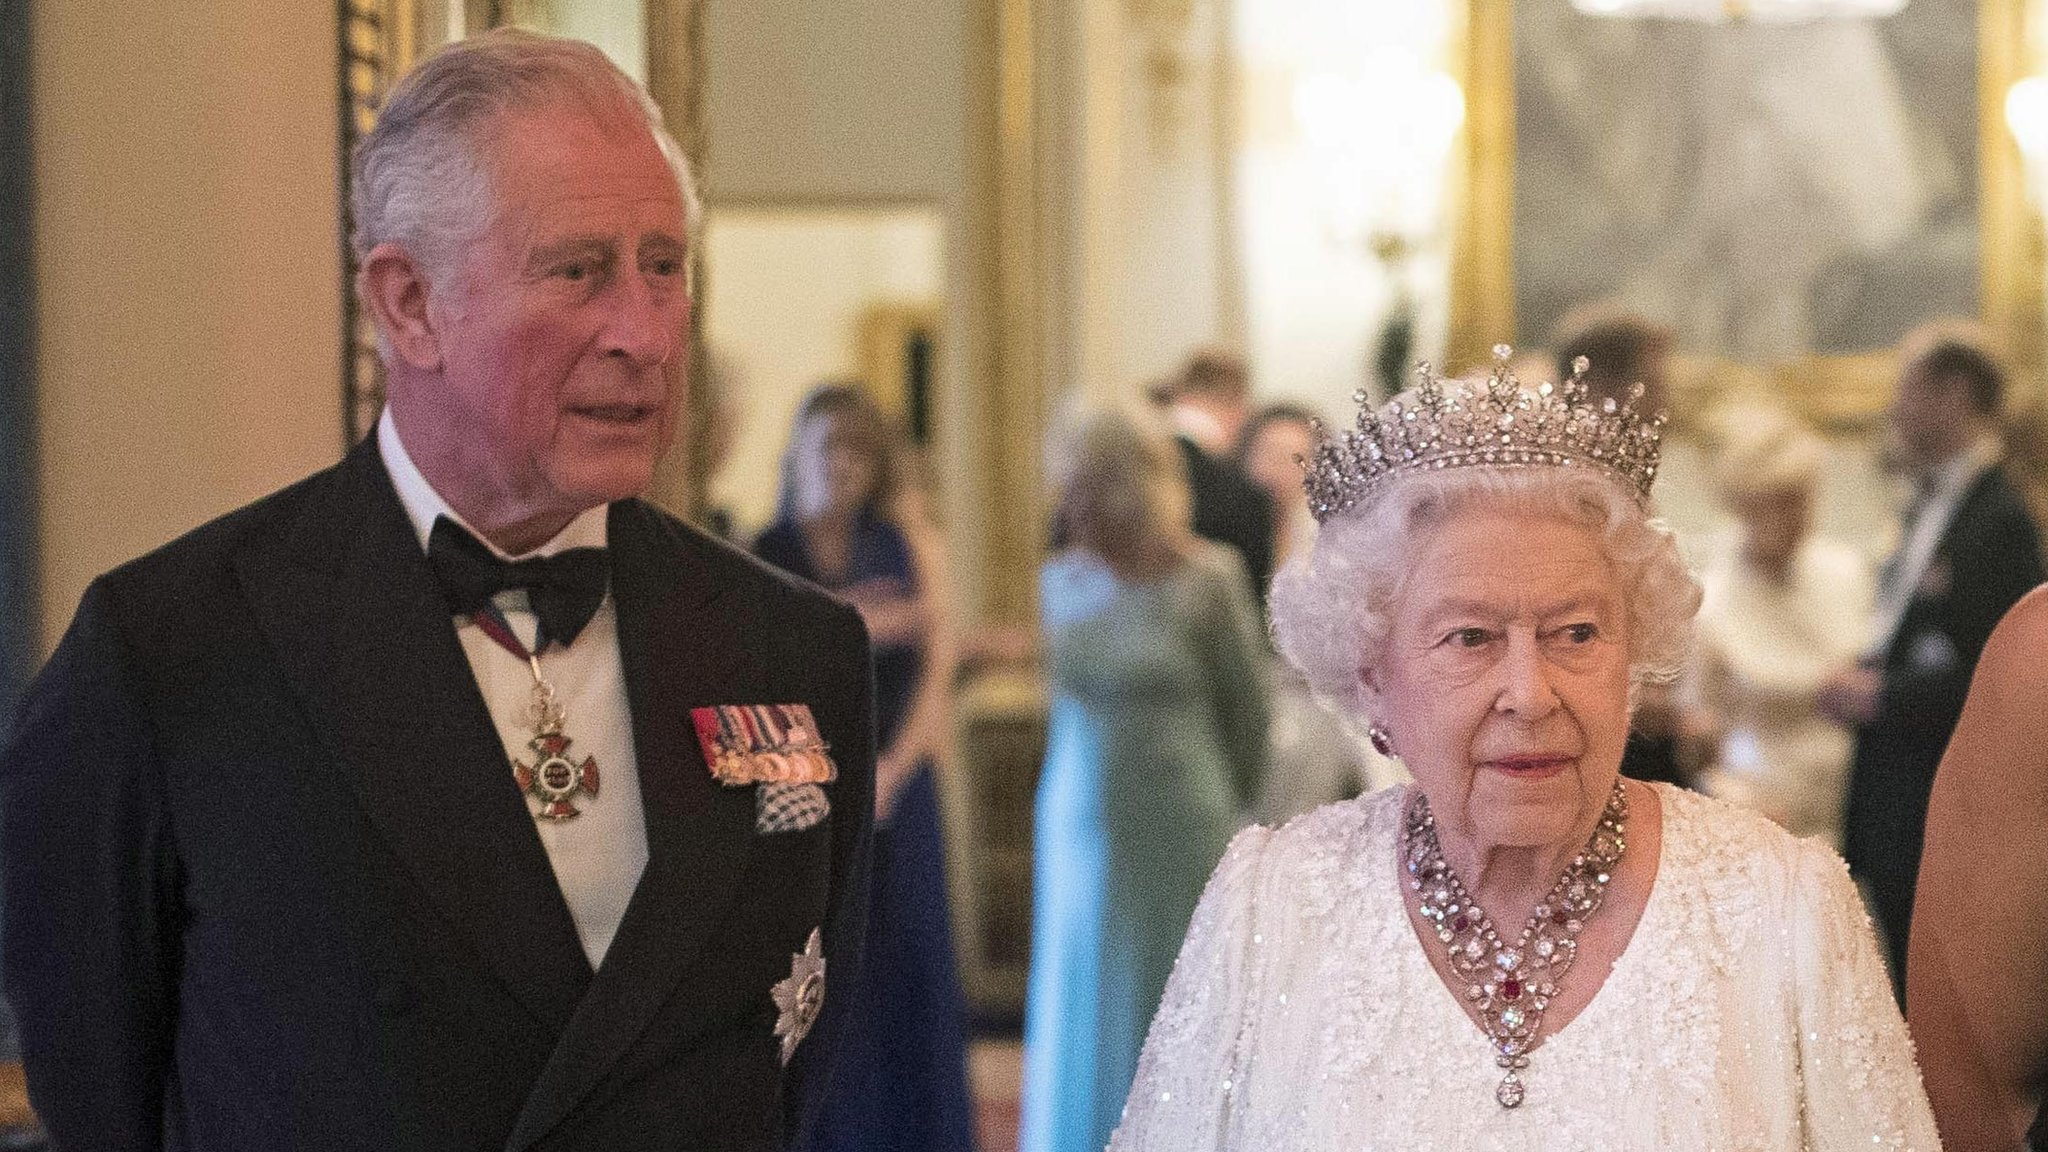 Commonwealth meeting: Leaders to discuss who will succeed Queen as head